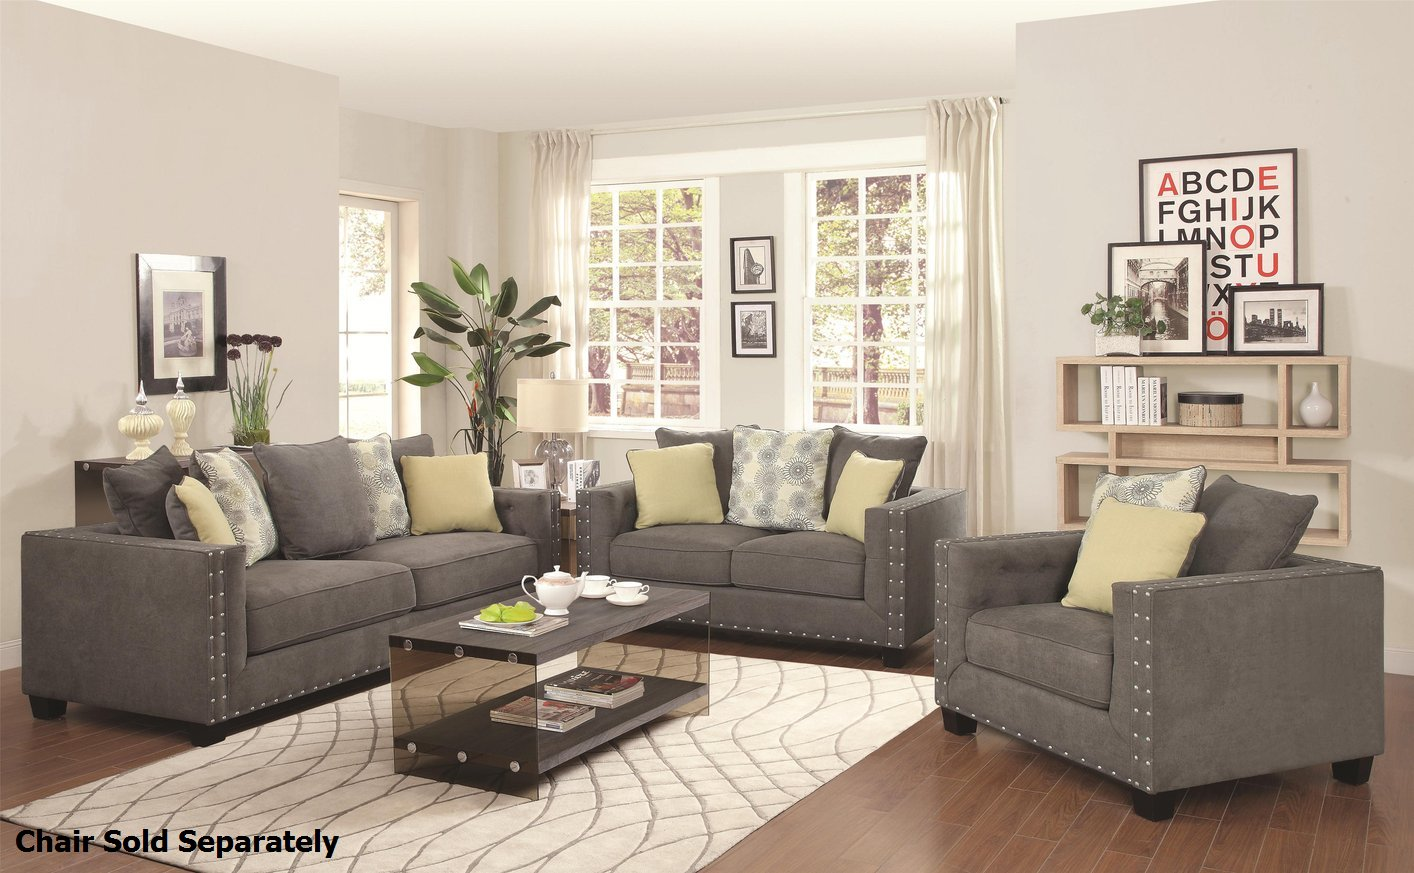 Kelvington Grey Fabric Reclining Sofa and Loveseat Set - Coaster Kelvington 501421 501422 Grey Fabric Reclining Sofa And